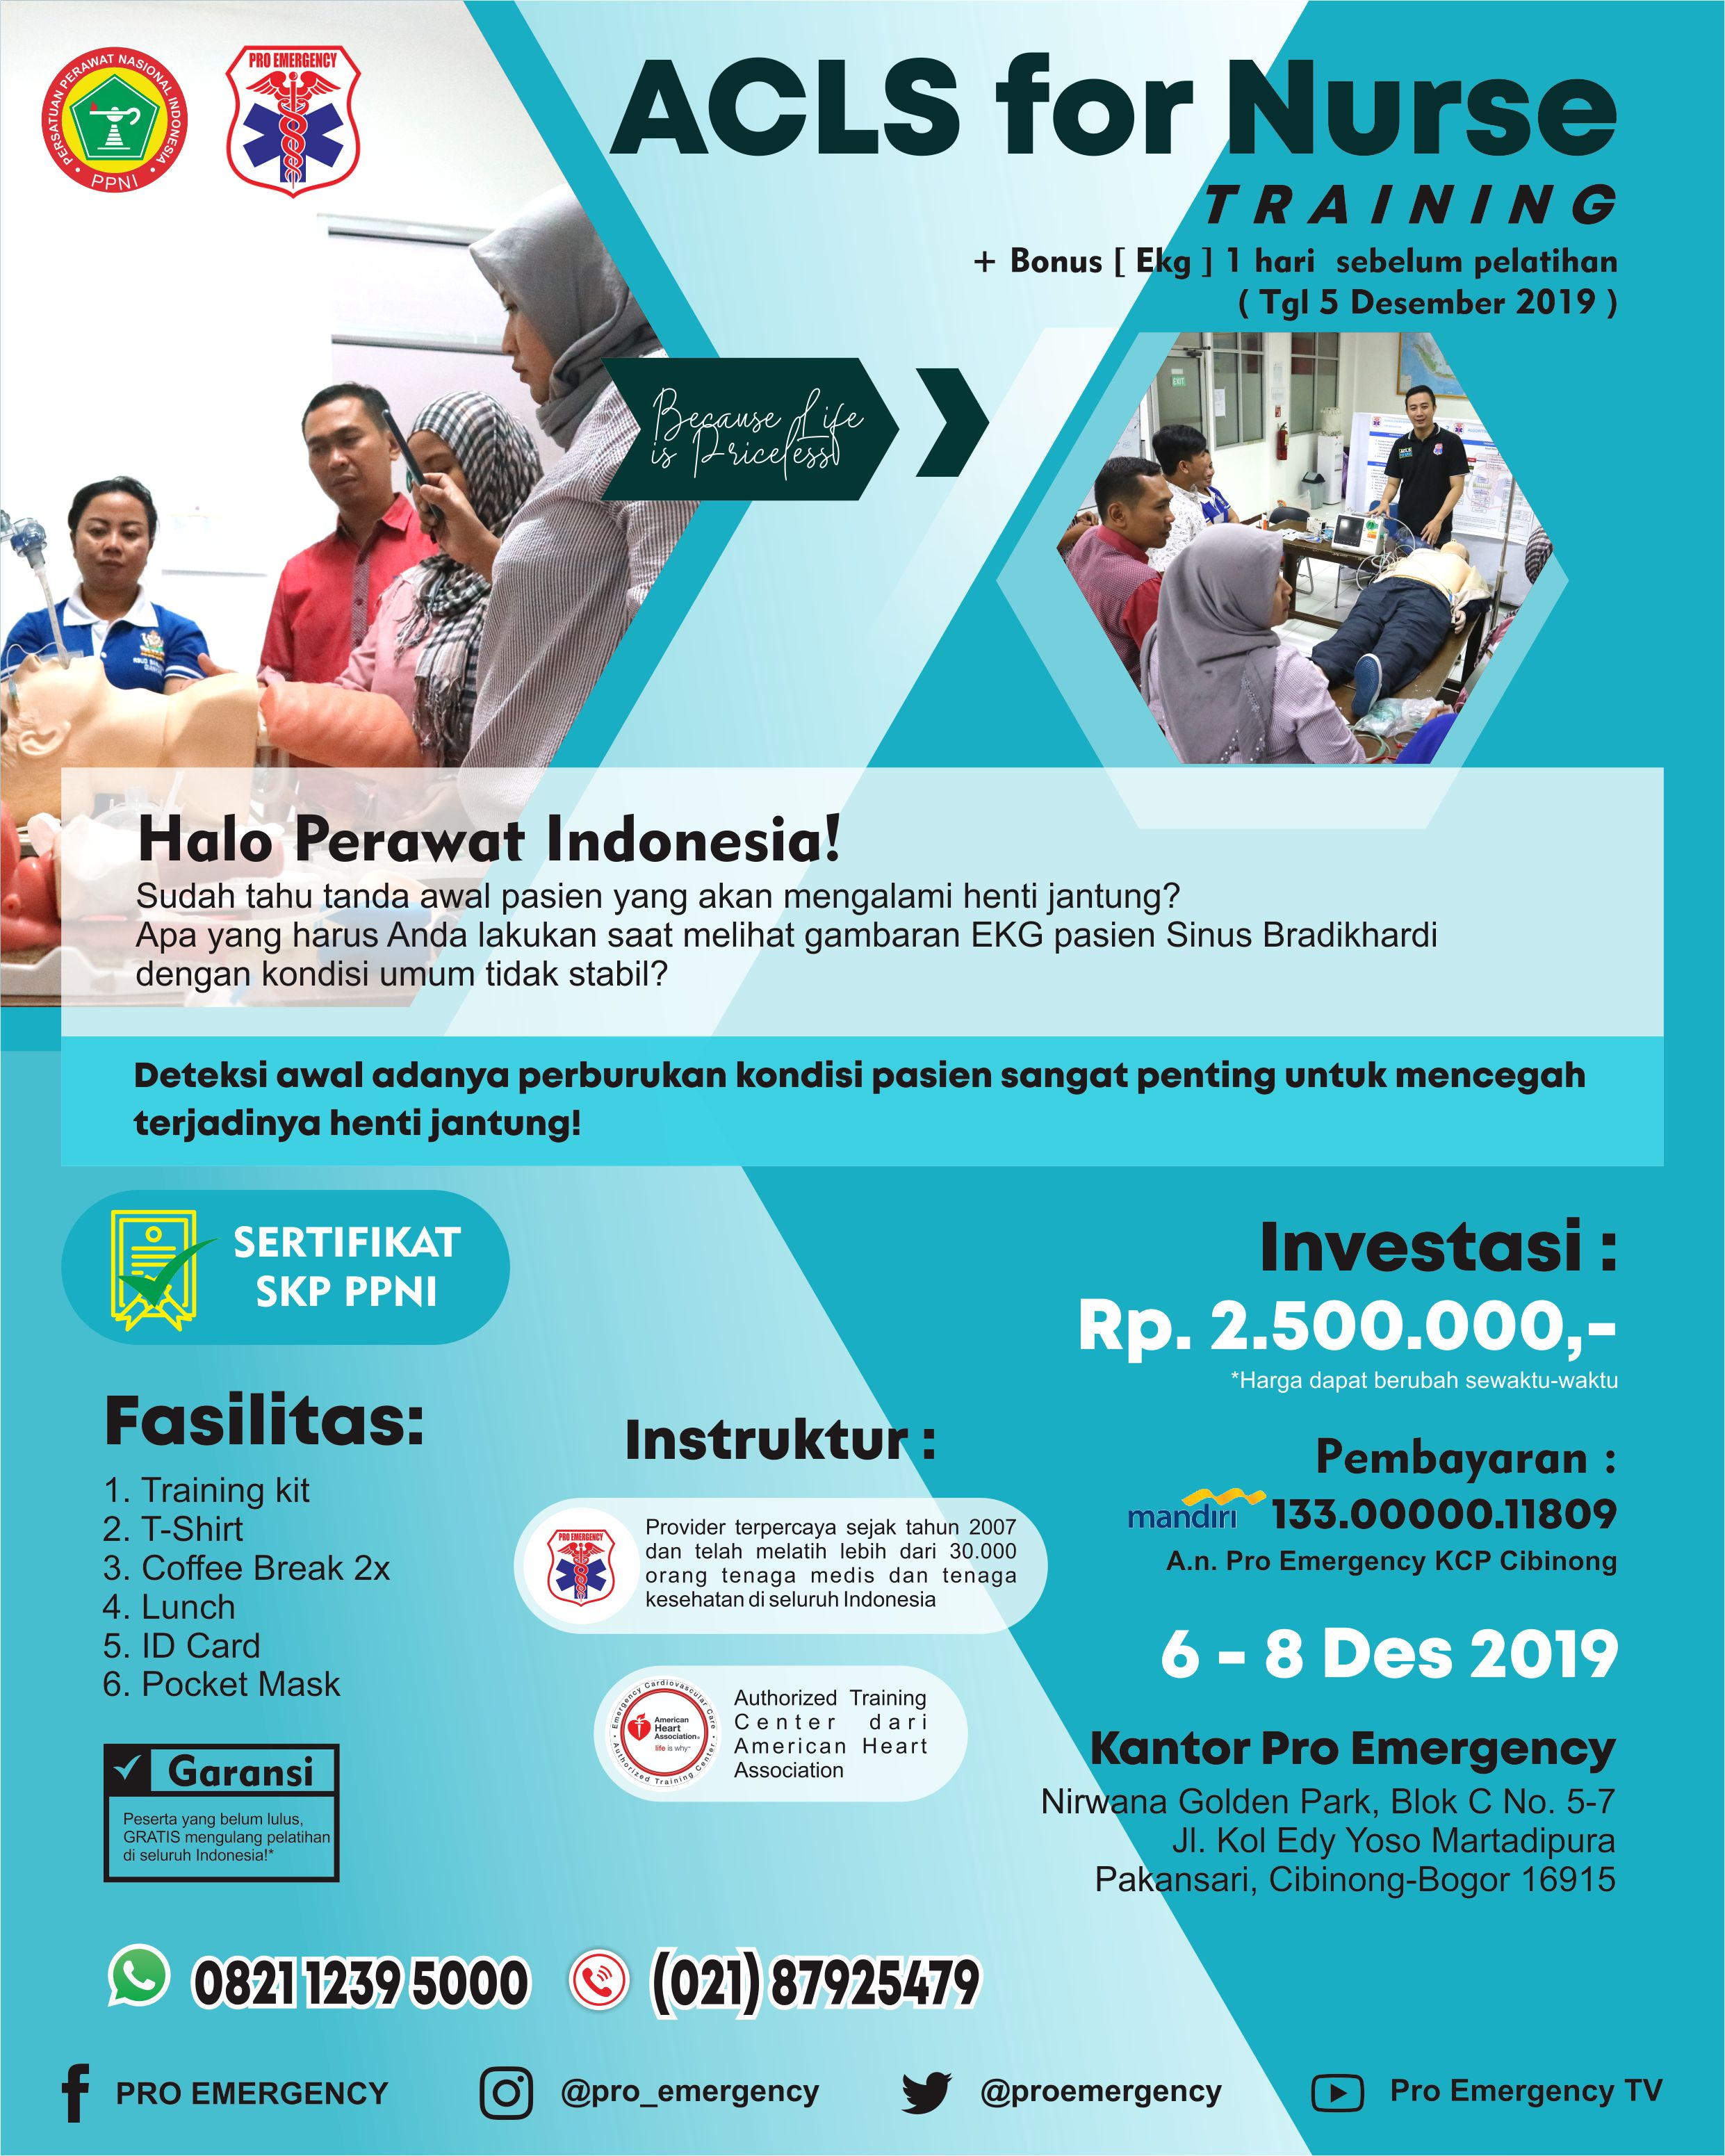 ACLS For Nurse 5 - 8 DESEMBER 2019  PRO EMERGENCY BOGOR